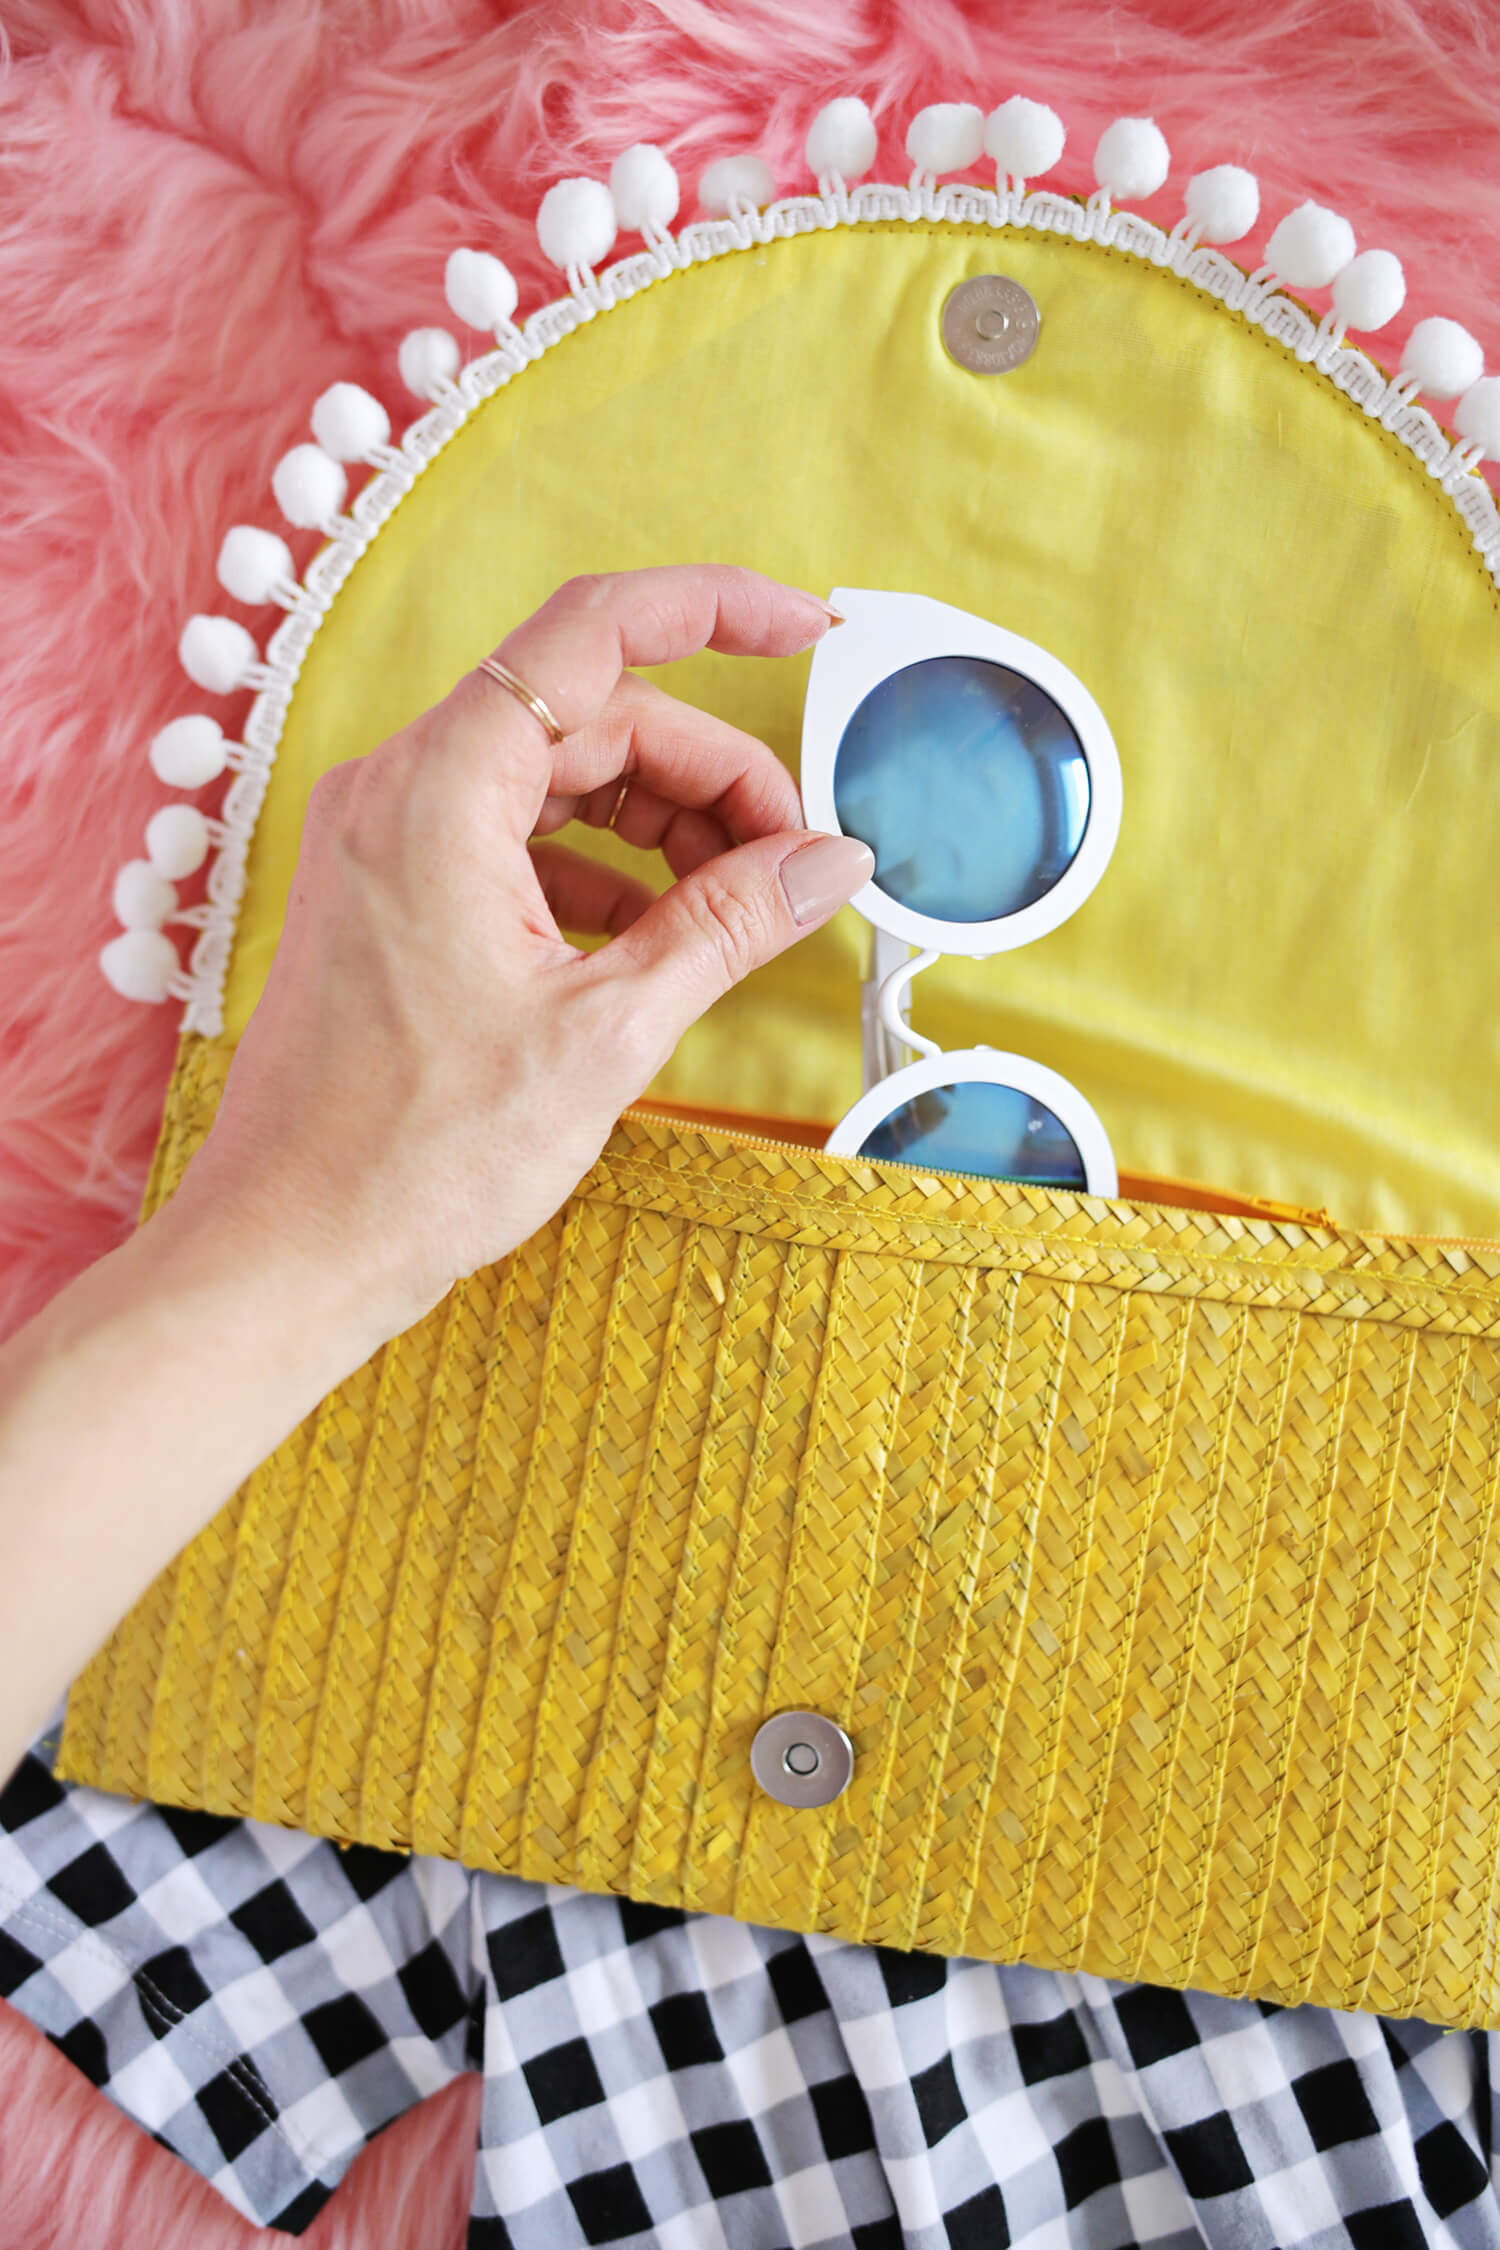 Try This! Turn a Simple Straw Clutch Into The Perfect Vacation Bag! (click through for tutorial)